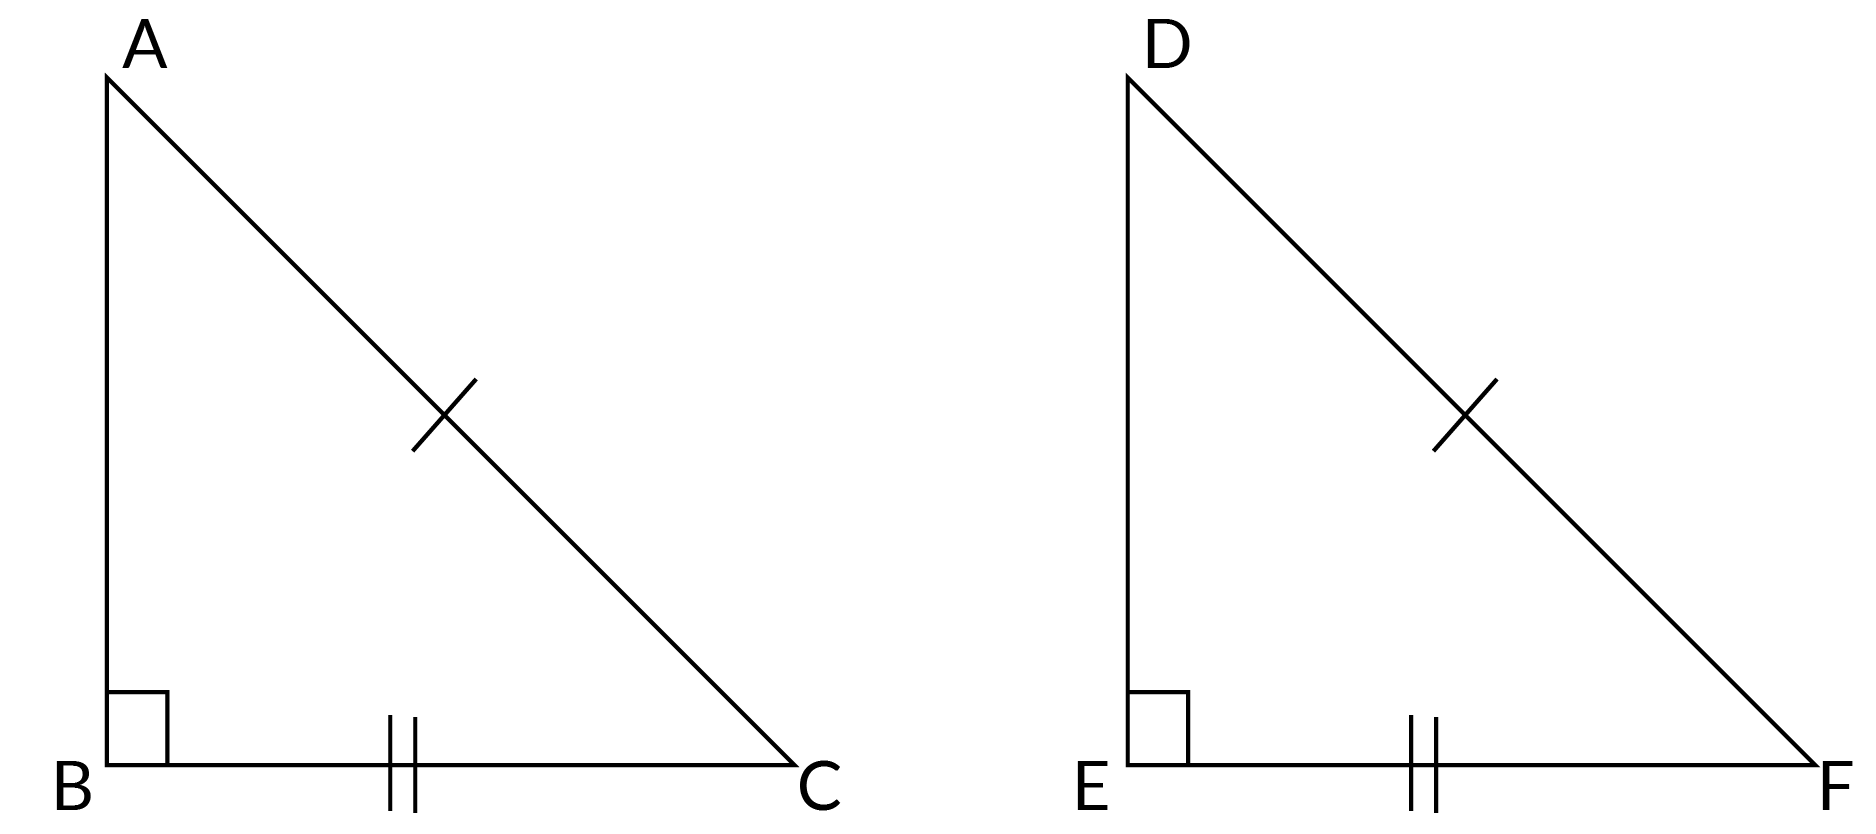 RHS Postulate (Right Angle Hypotenuse Side)